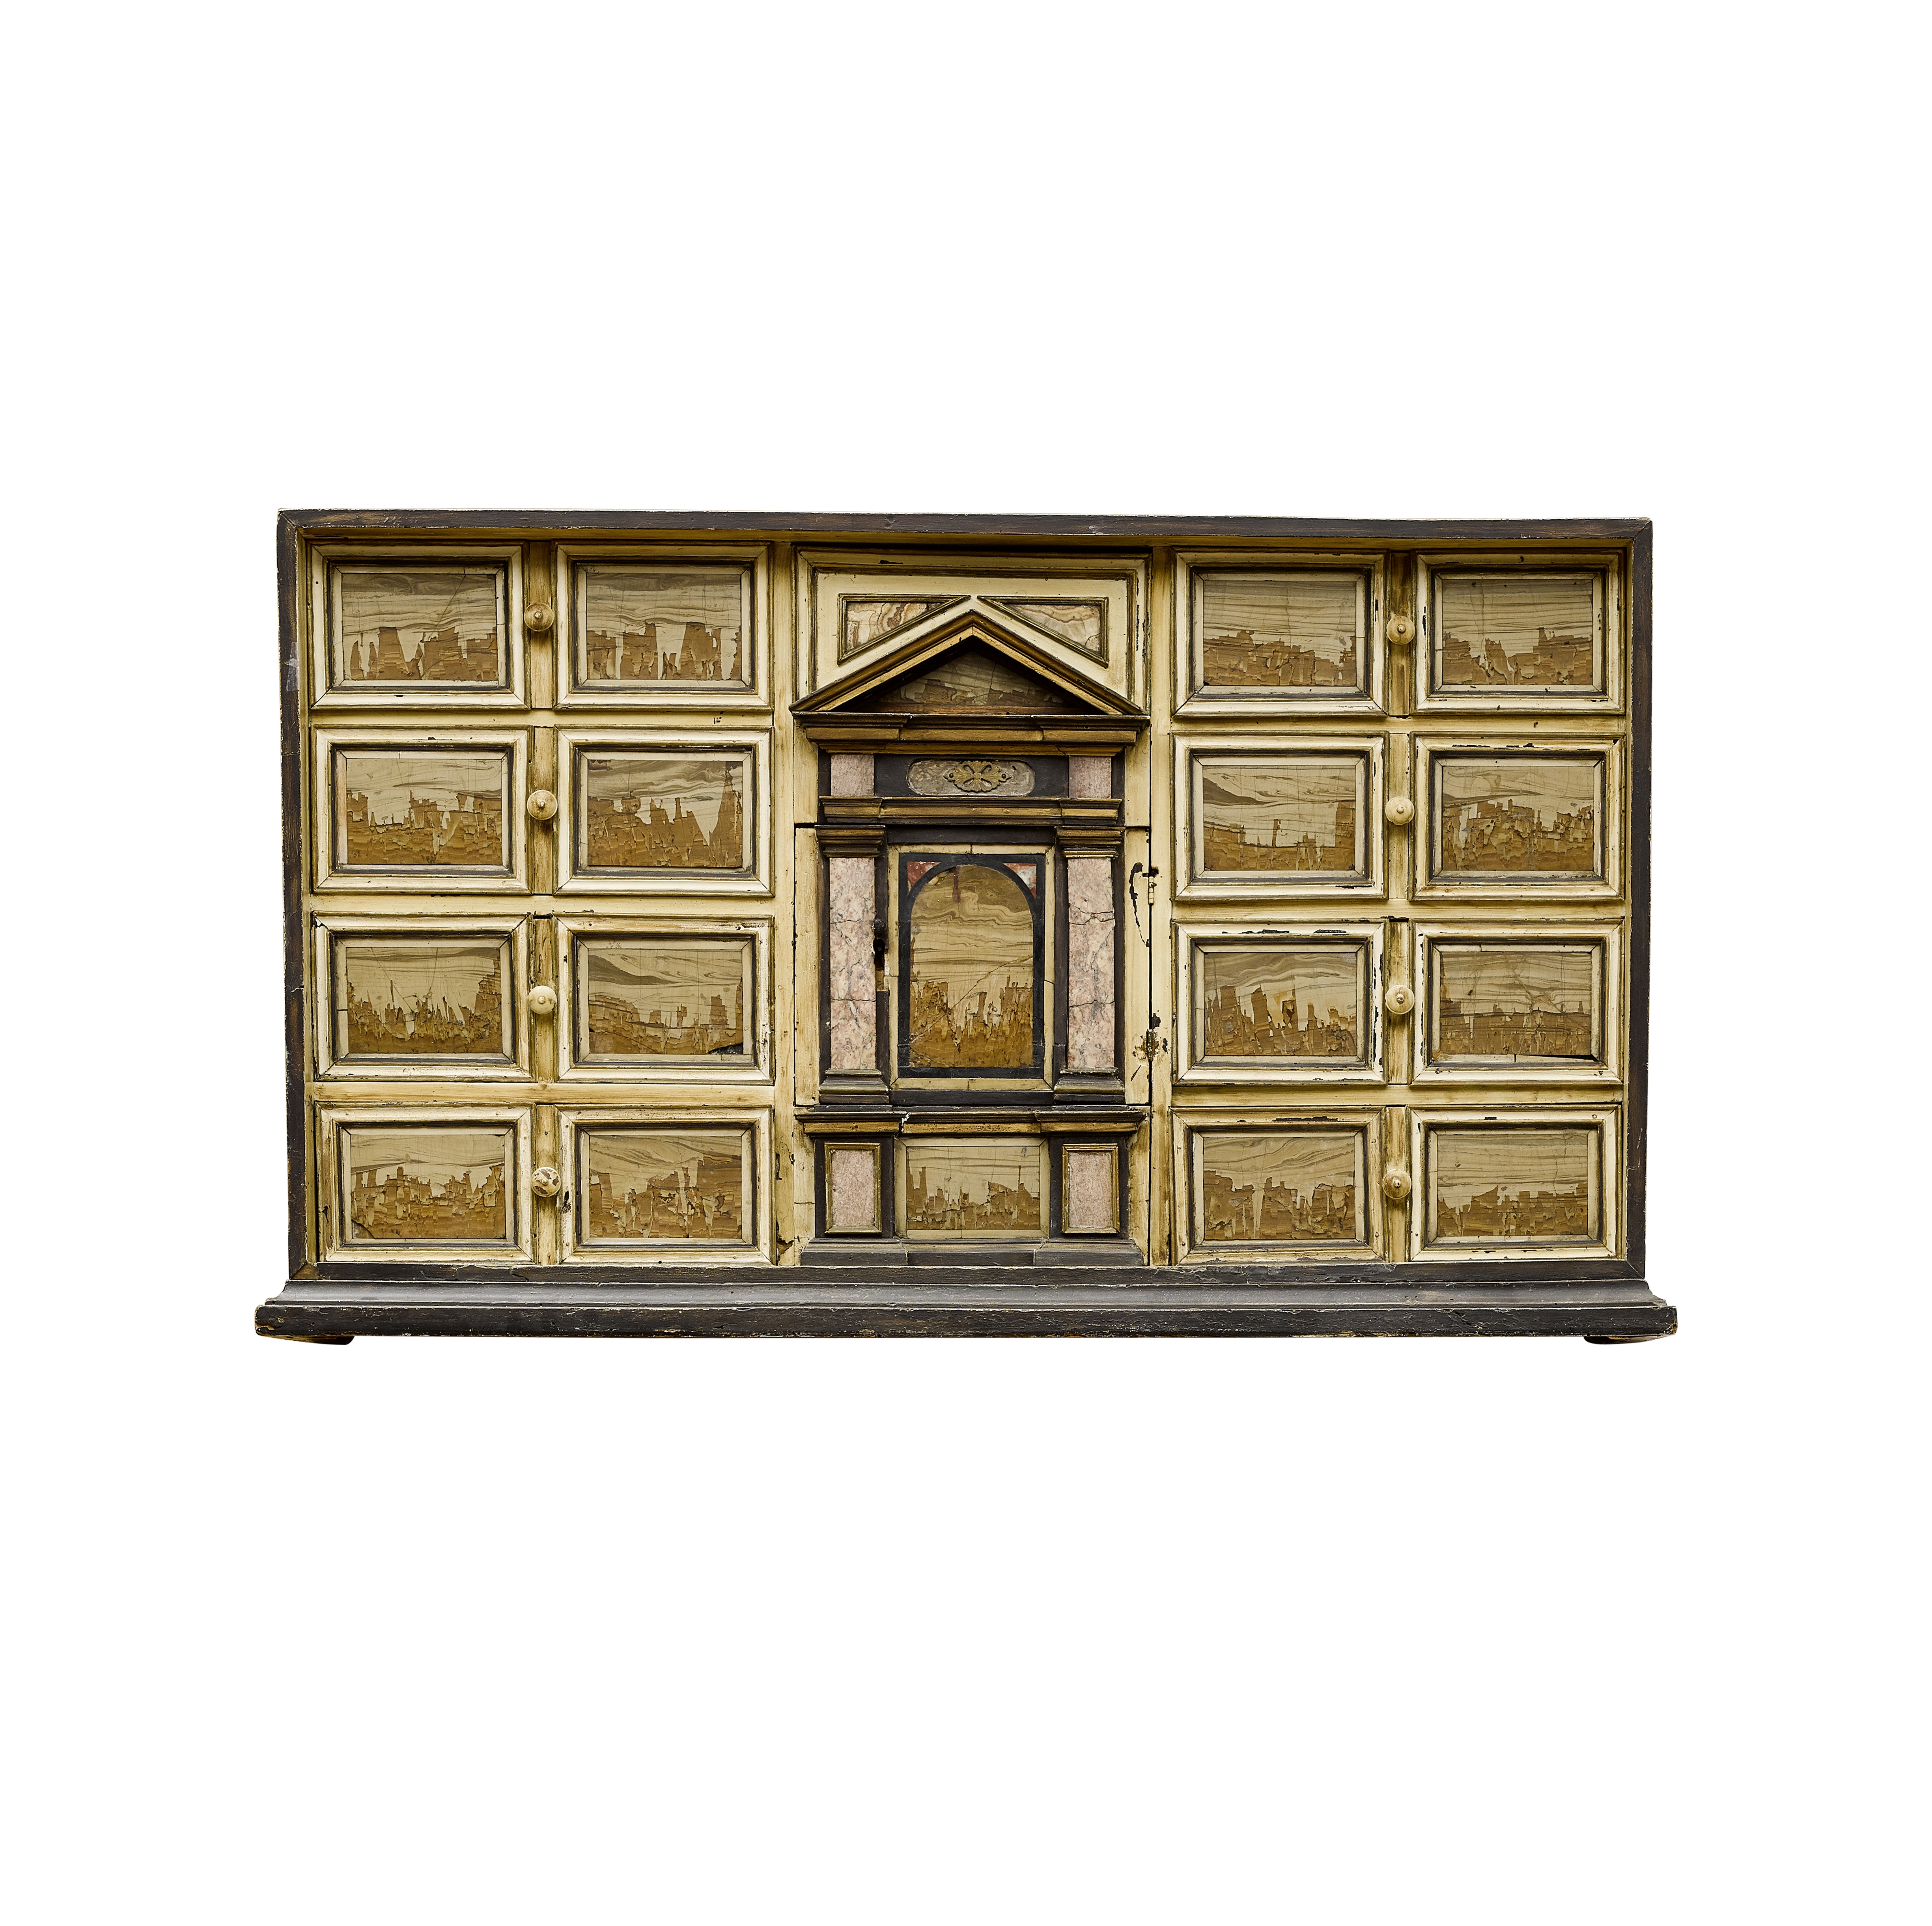 Lot 112 - AN ITALIAN BAROQUE PAINTED and PIETRA DURA INLAID TABLE CABINET Early 18th century